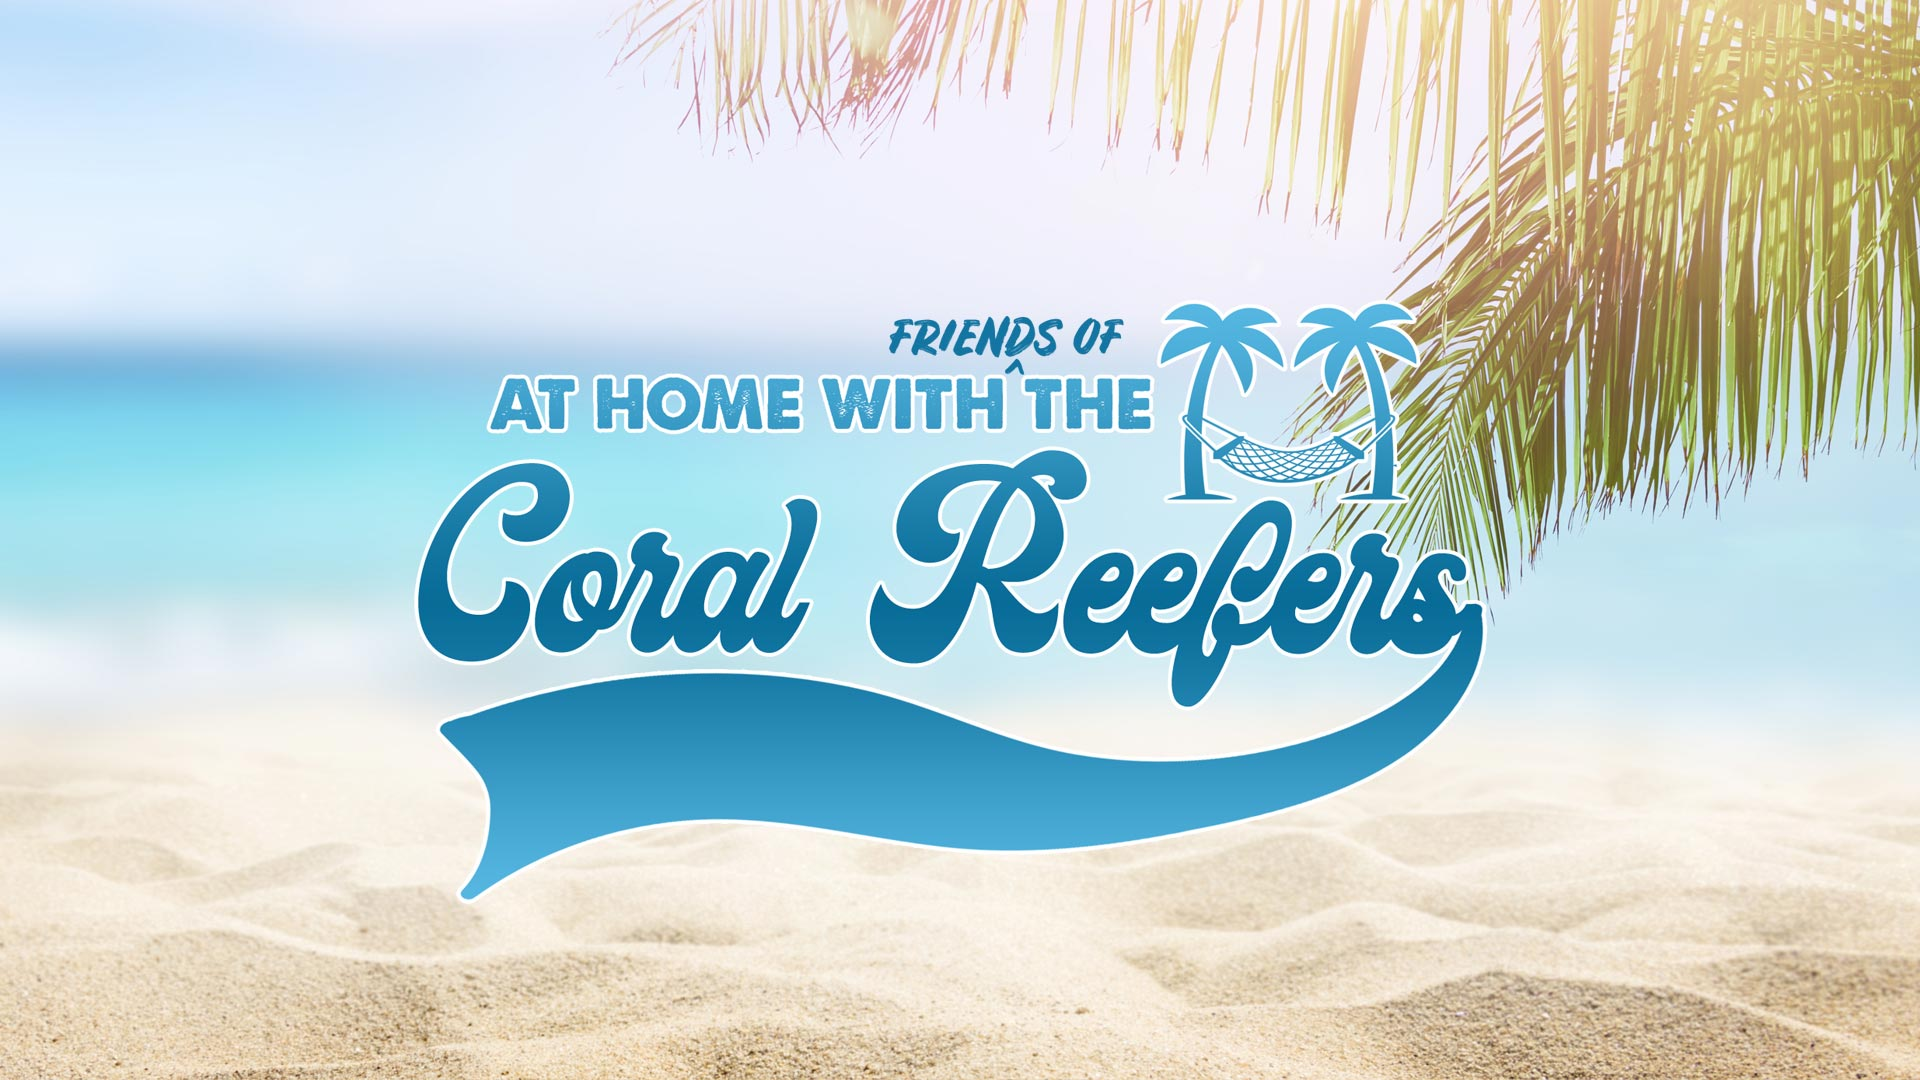 At Home With Friends Of The Coral Reefers Savannah Buffett